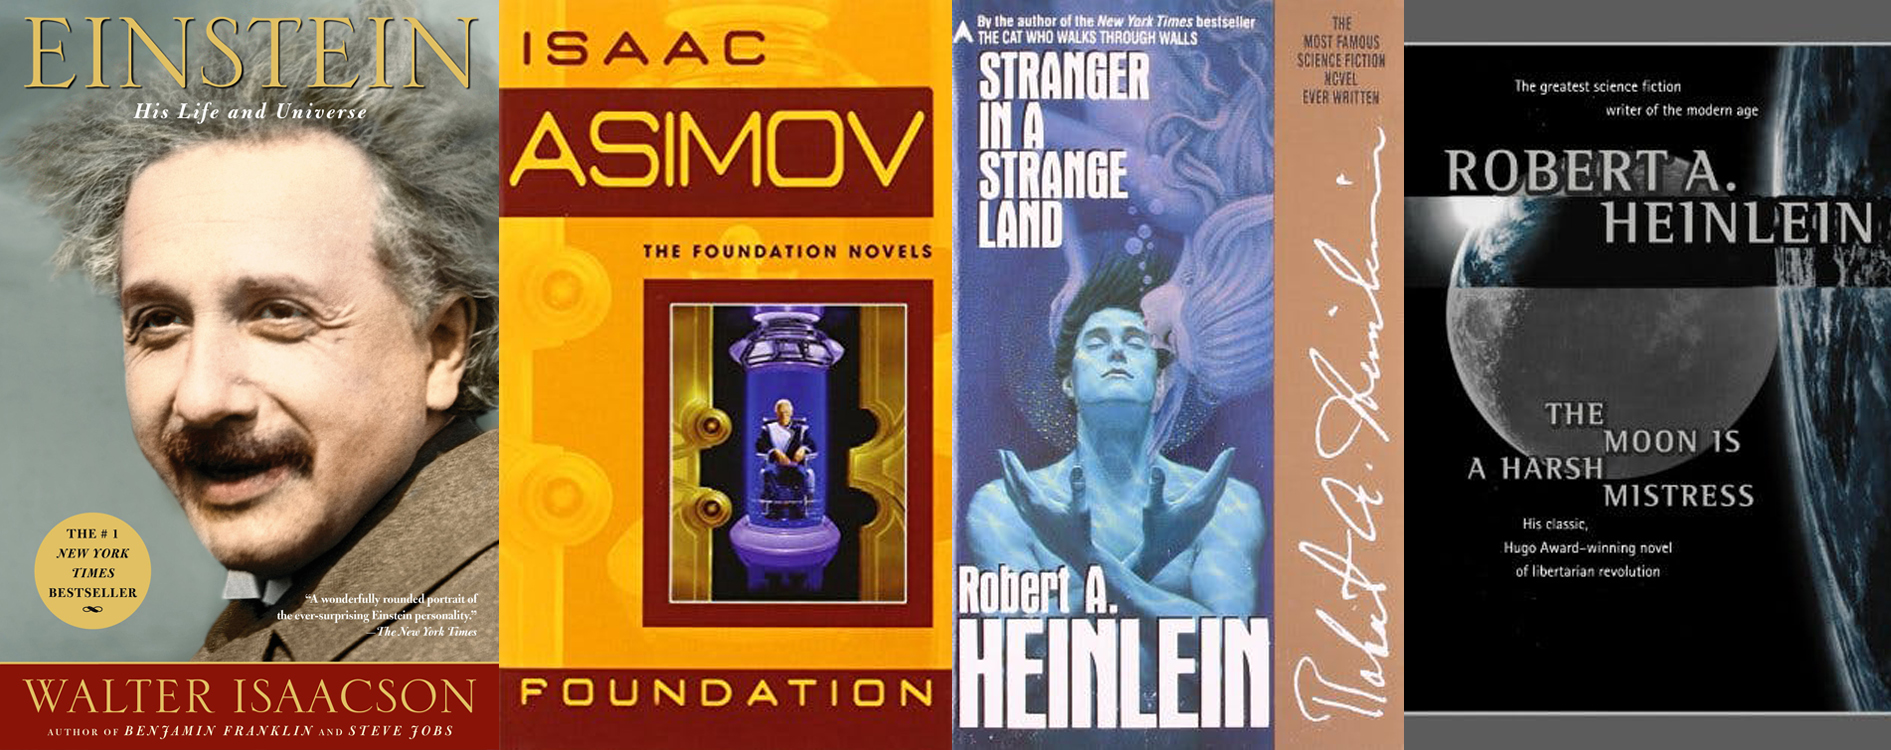 Einstein: His Life And Universe (Walter Isaacson); Foundation (Isaac Asimov); Stranger in a Strange Land (Robert A. Heinlein); The Moon is a Harsh Mistress (Robert A. Heinlein)